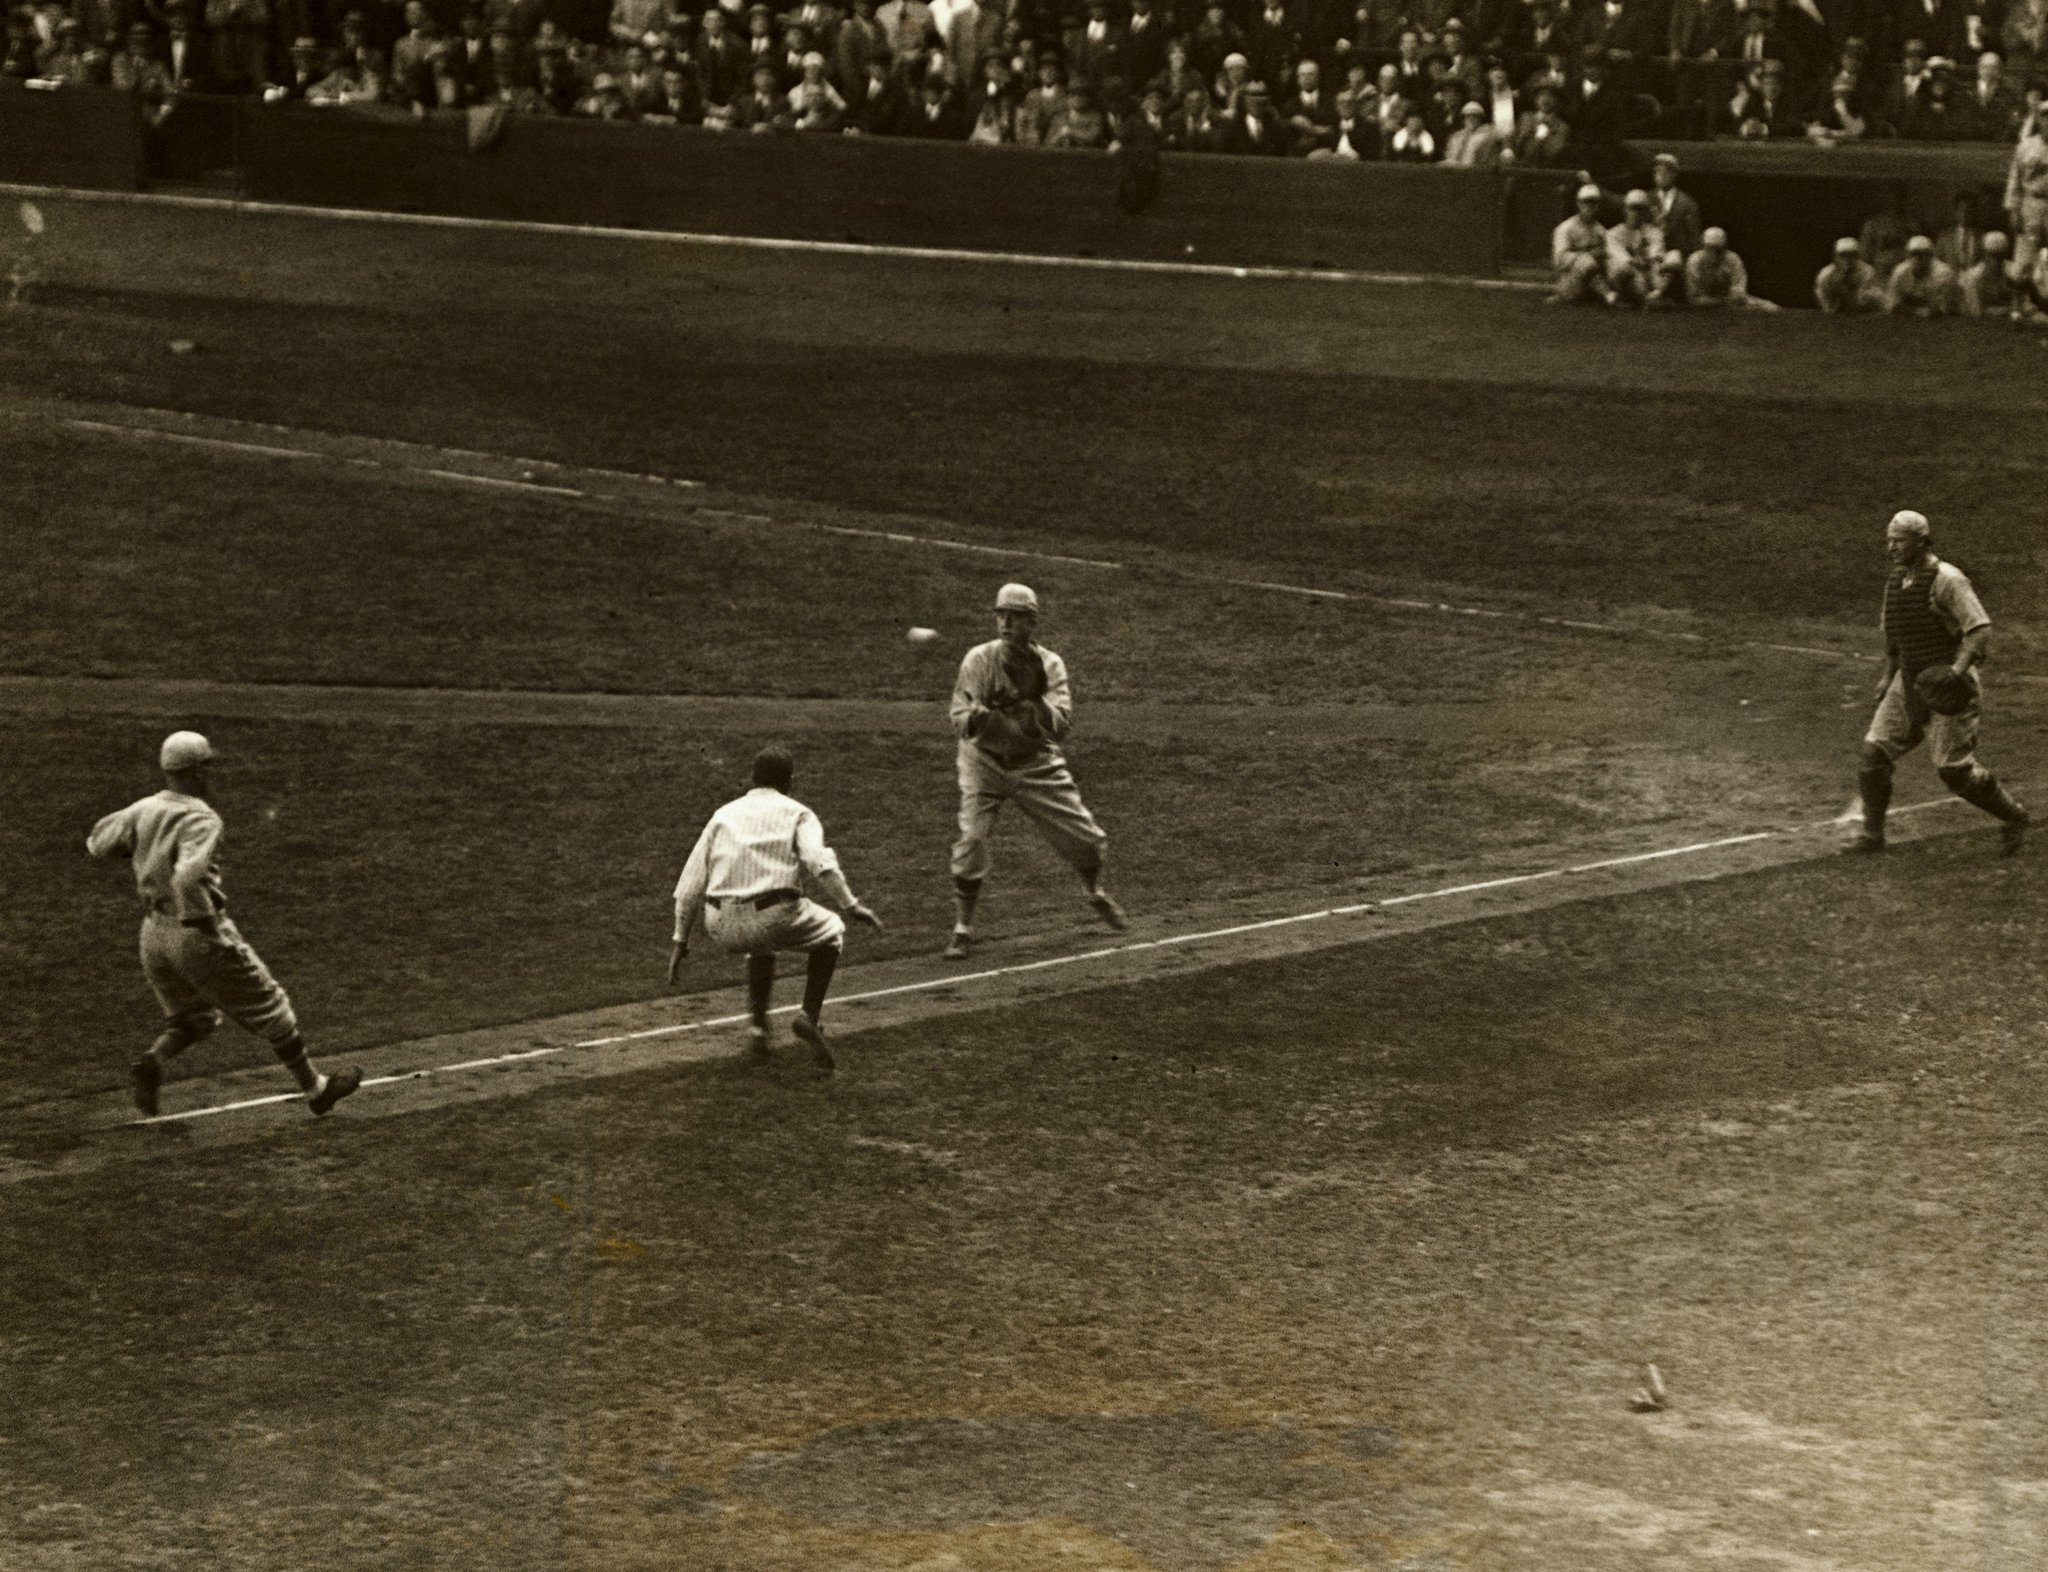 Yankee Stadium, Bronx, Oct 3, 1926 - Tony Lazzeri of Yankees is caught dead in his tracks trying to steal home vs St Louis Cardinals in Game 2 of 1926 World Series. But miraculously he'd find a way to score for 2-0 Yanks lead, however the Cardinals would rally for a 6-2 win https://t.co/DN0jXSFKit